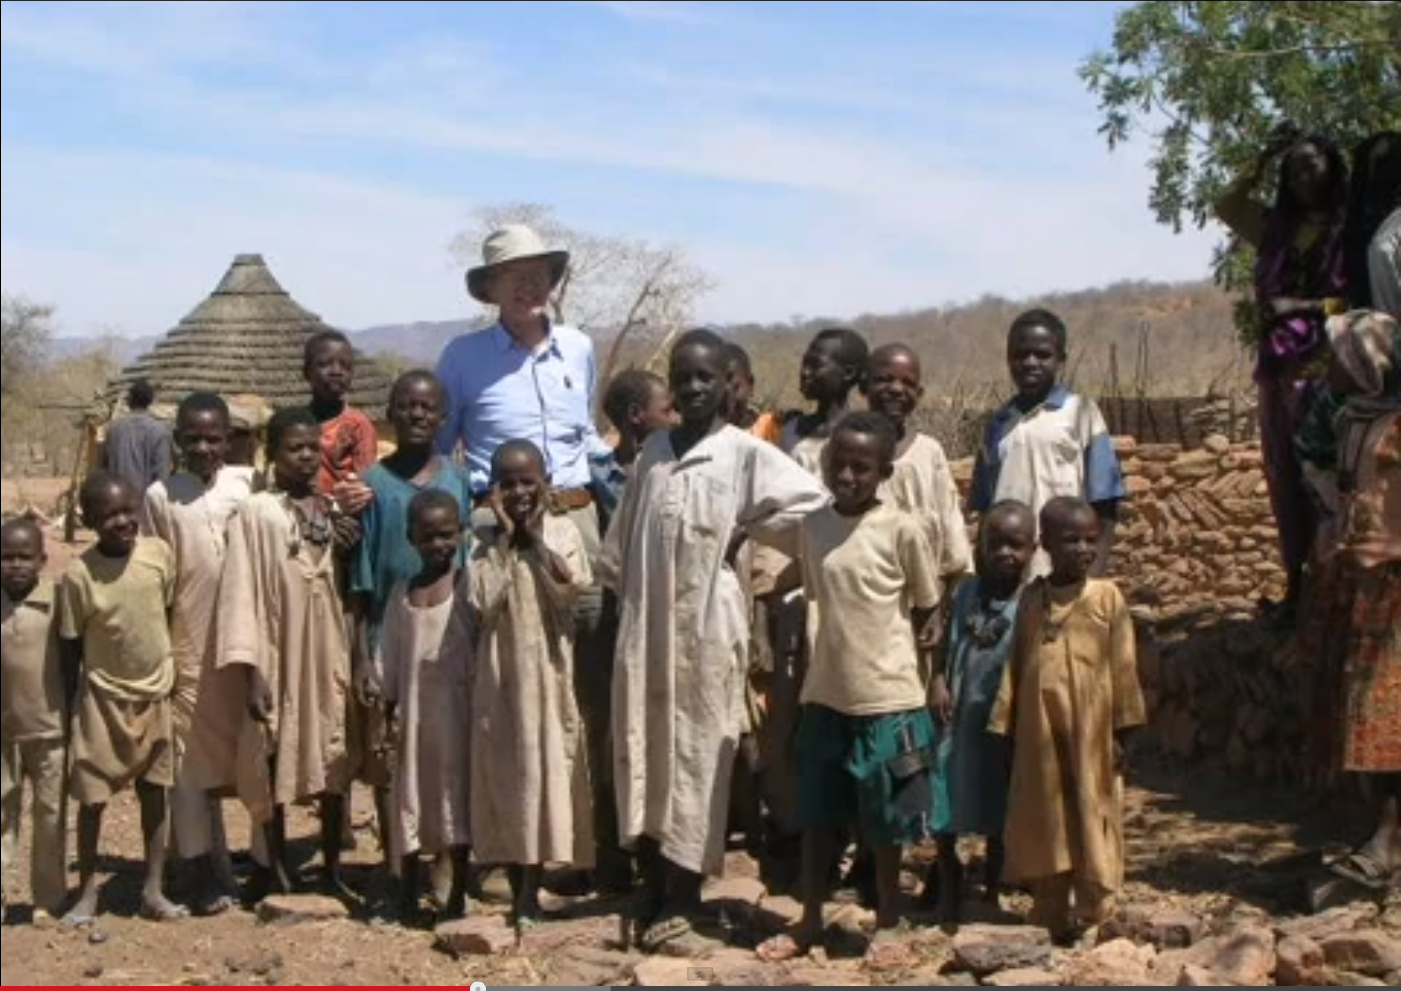 Darfur is Dying Game-A Serious Game for Social Action